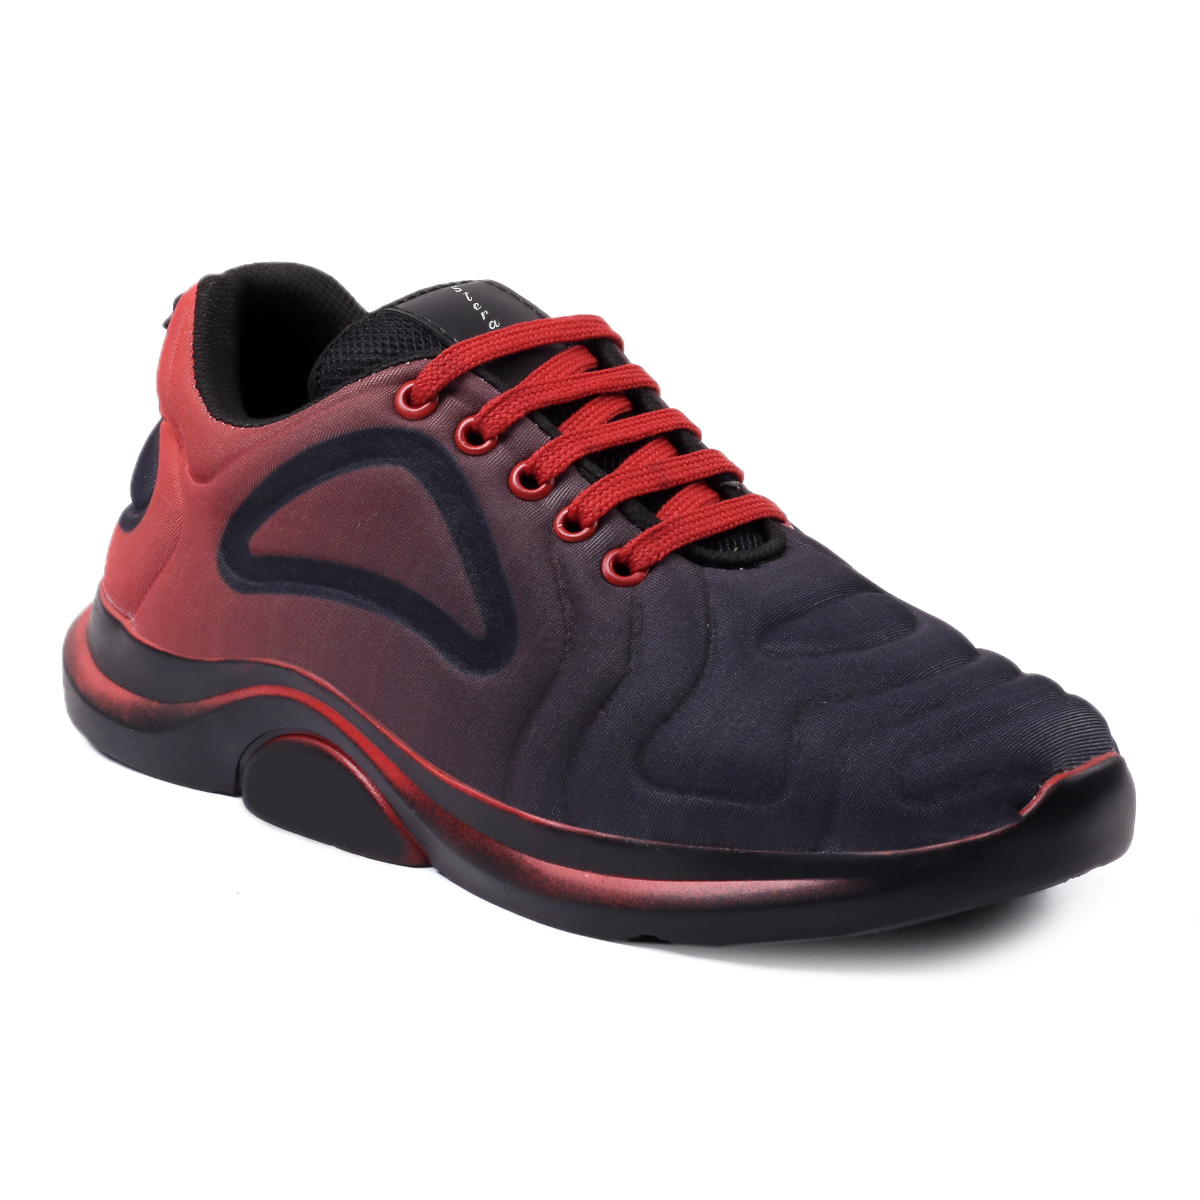 STERA MEN'S STYLISH HEAVY QUALITY DESIGNER UPPER WITH FLEXIBLE SNEAKER SHOE NHT-SNKR-1017-RED (RED,6-10,8 PAIR)